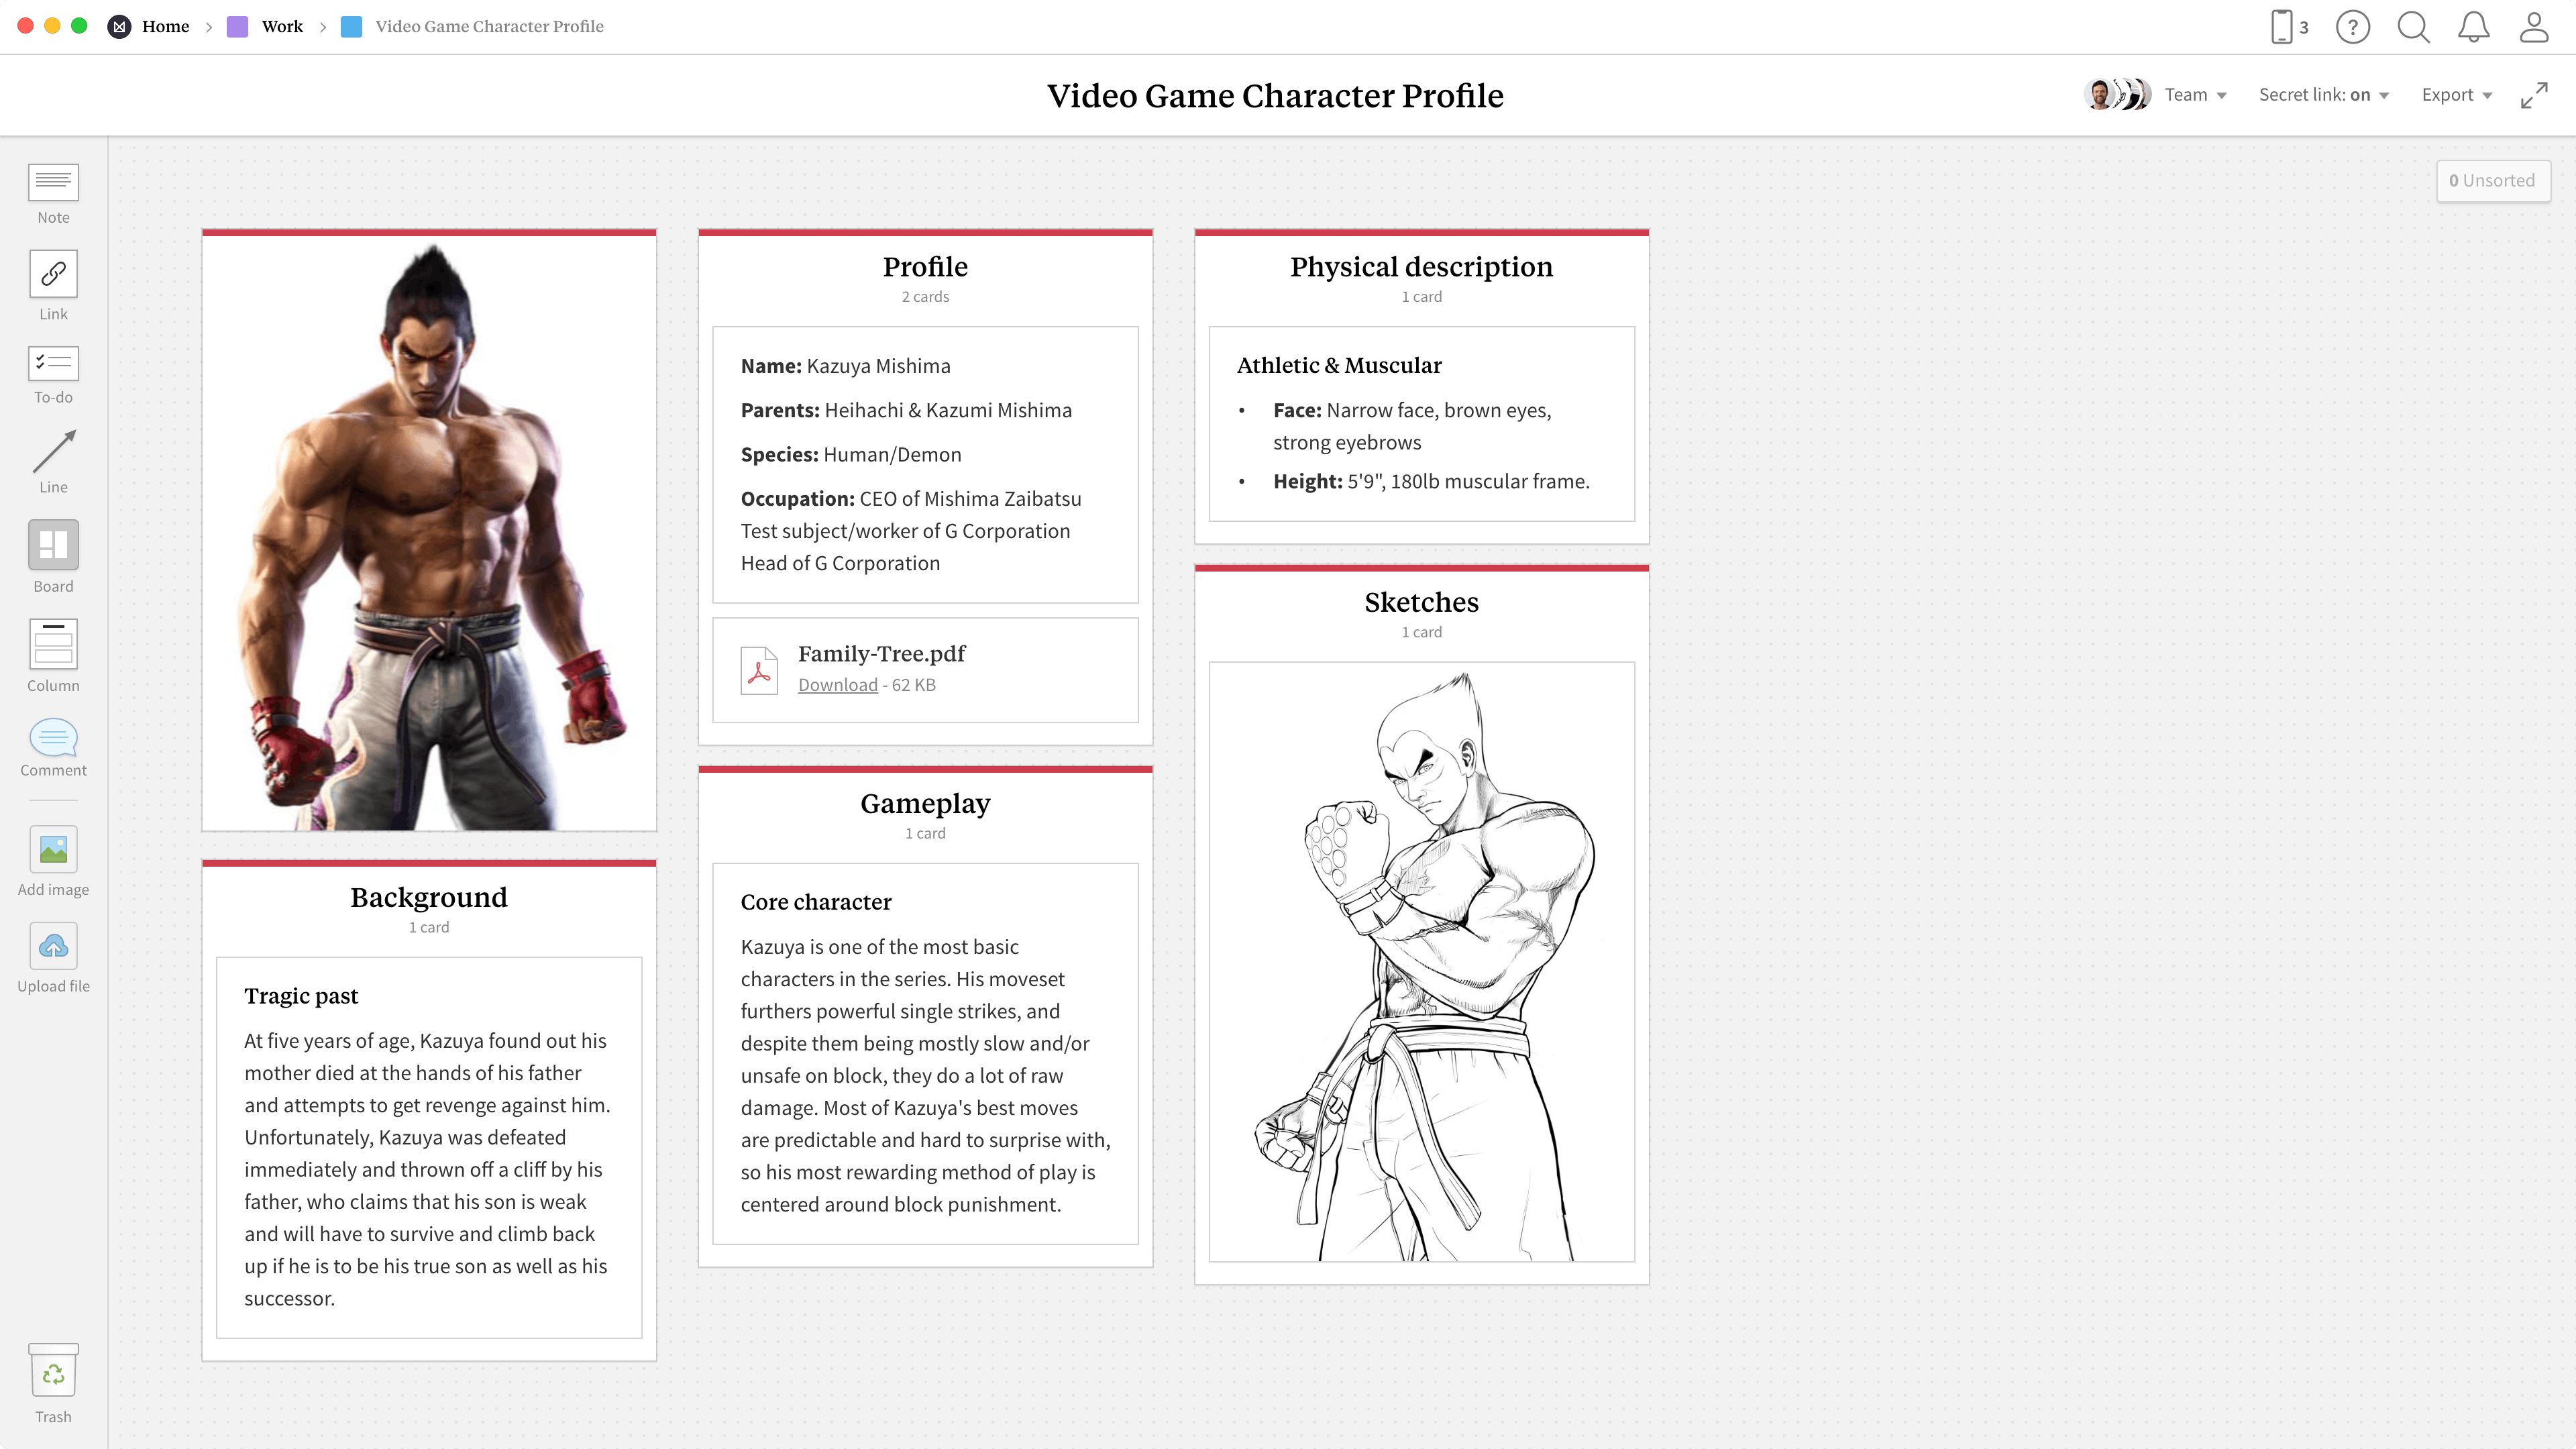 Completed Game Character Profile template in Milanote app